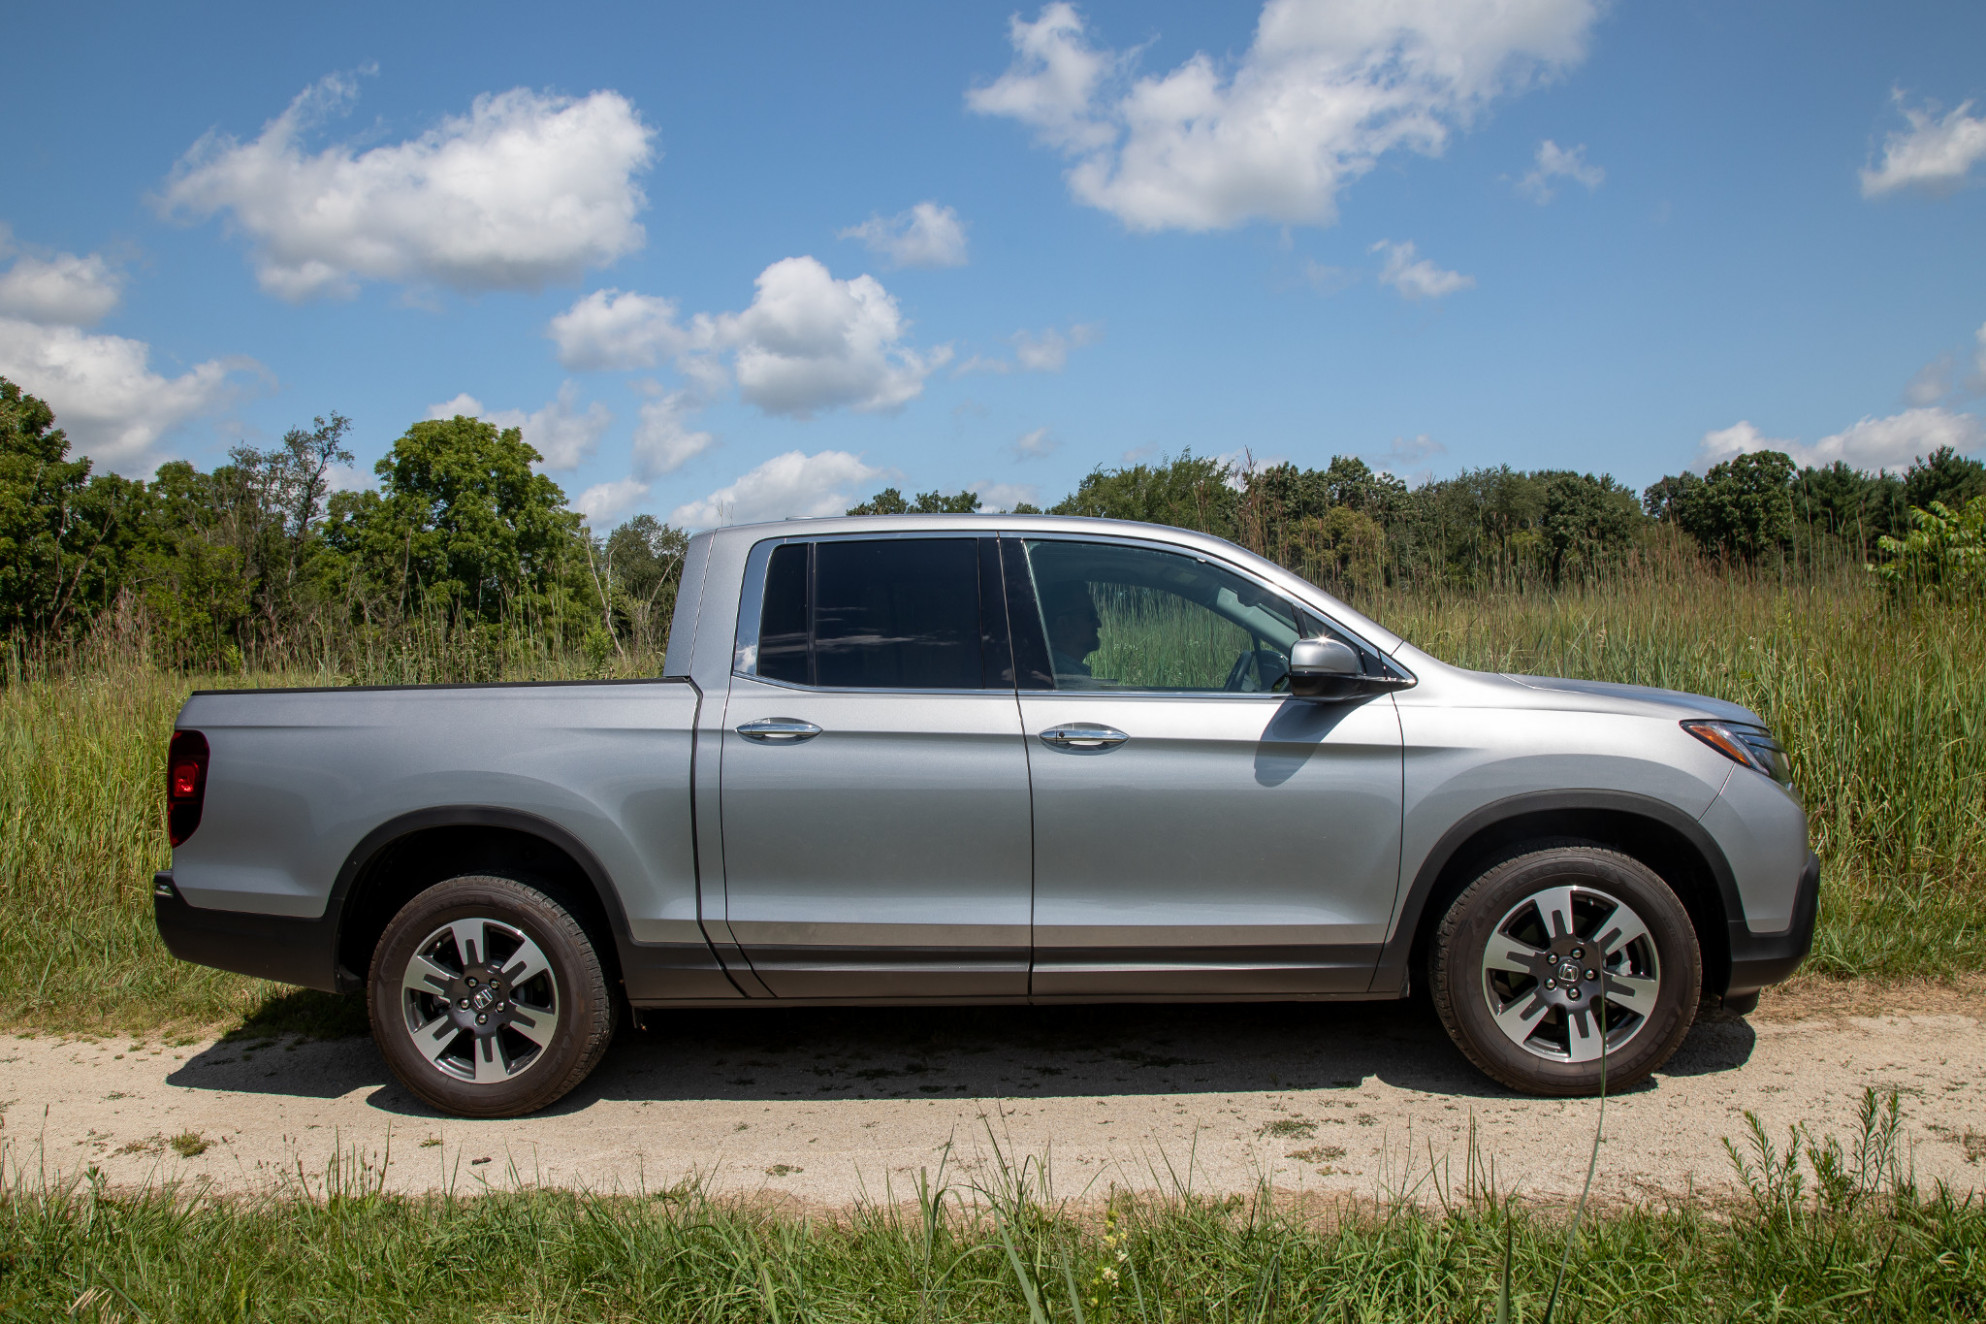 7 Honda Ridgeline: Which Should You Buy, 7 or 7? | News ..